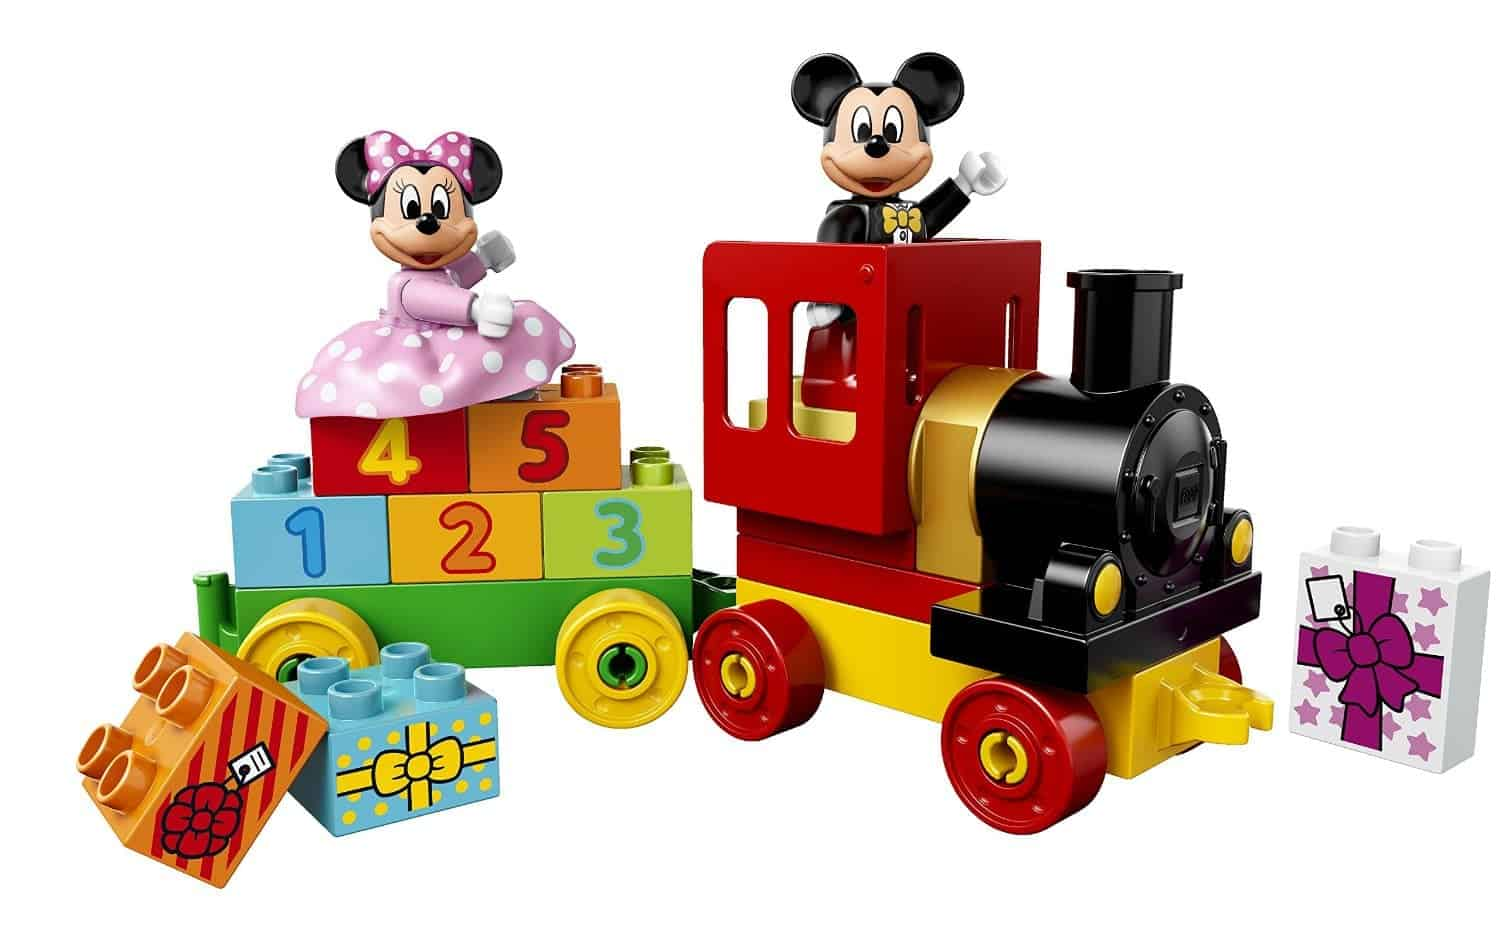 Lego Gift Ideas by Age - Toddler to Twelve Years: Mickey & Minnie Birthday Parade | www.thepinningmama.com